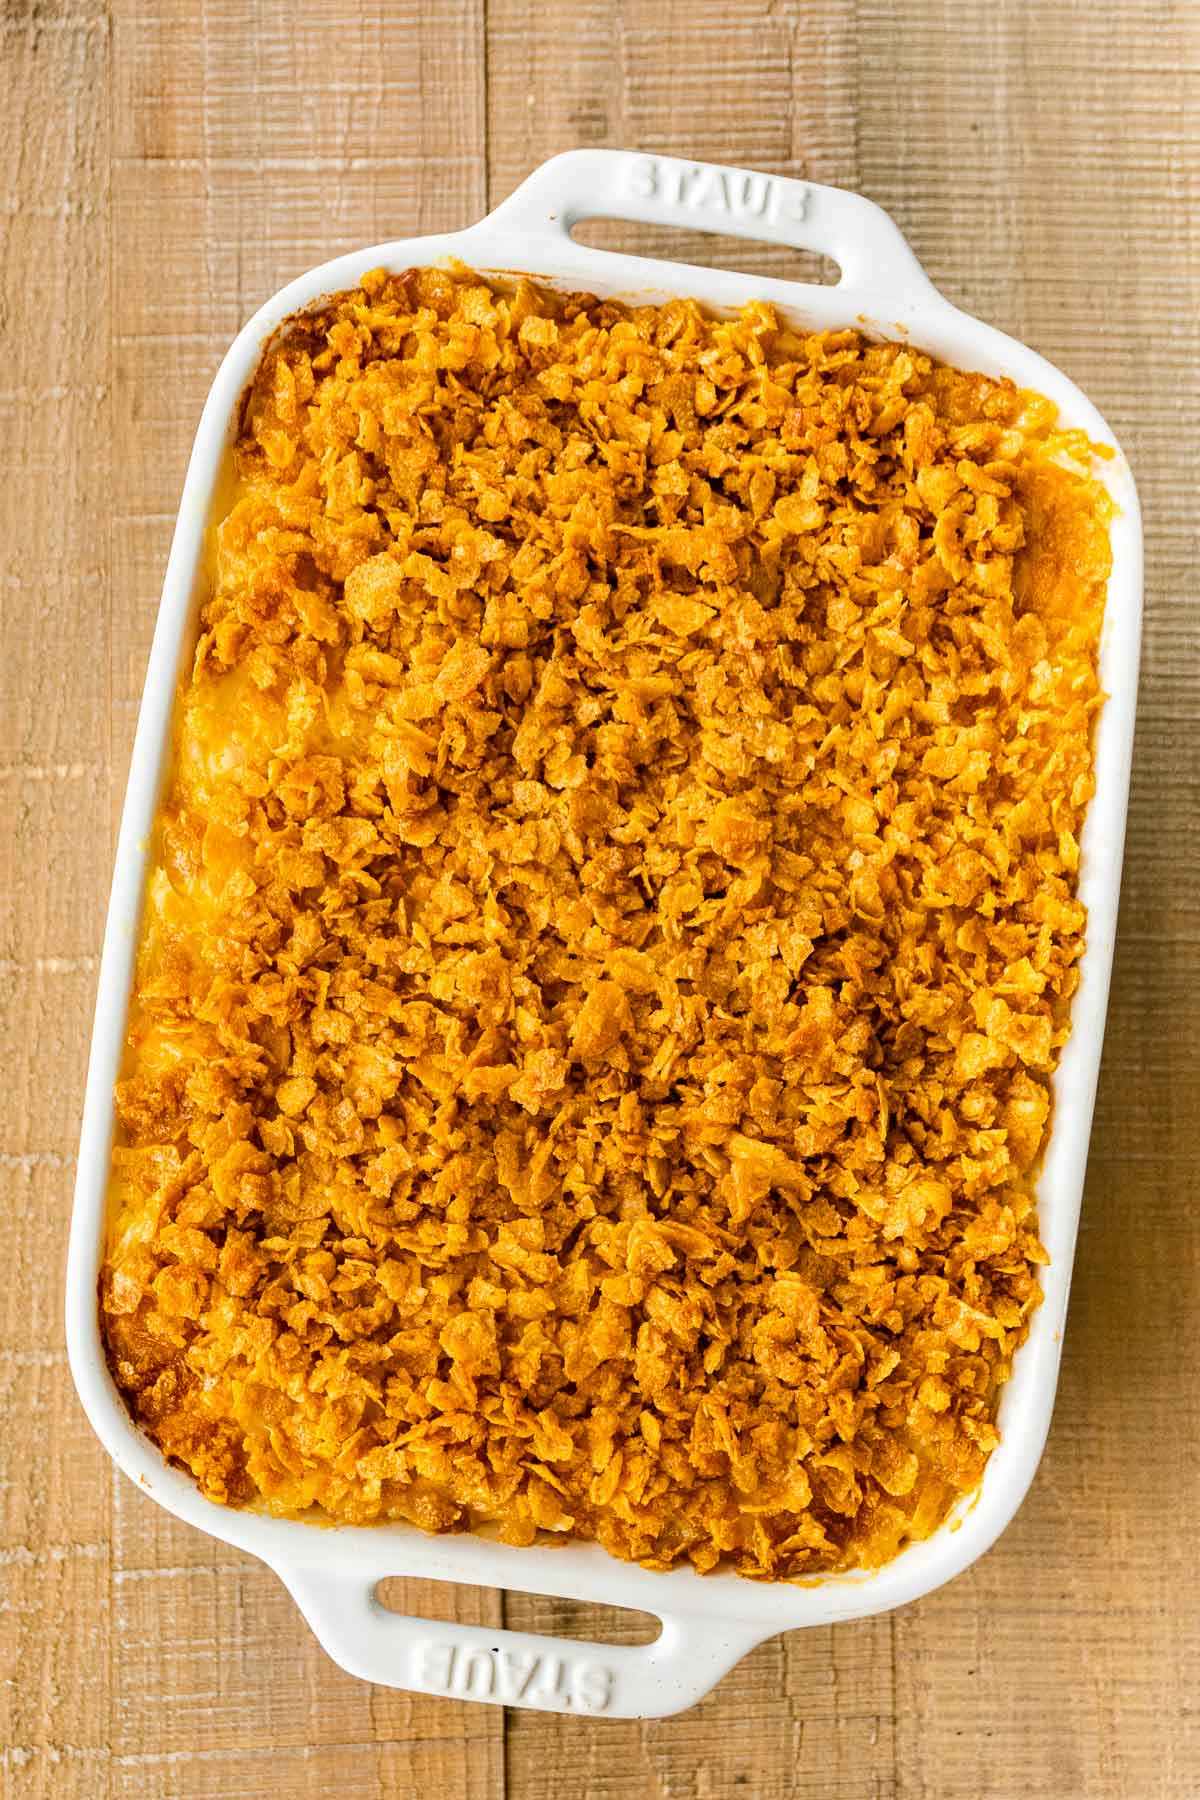 Funeral Potatoes assembled in baking dish with topping after baking